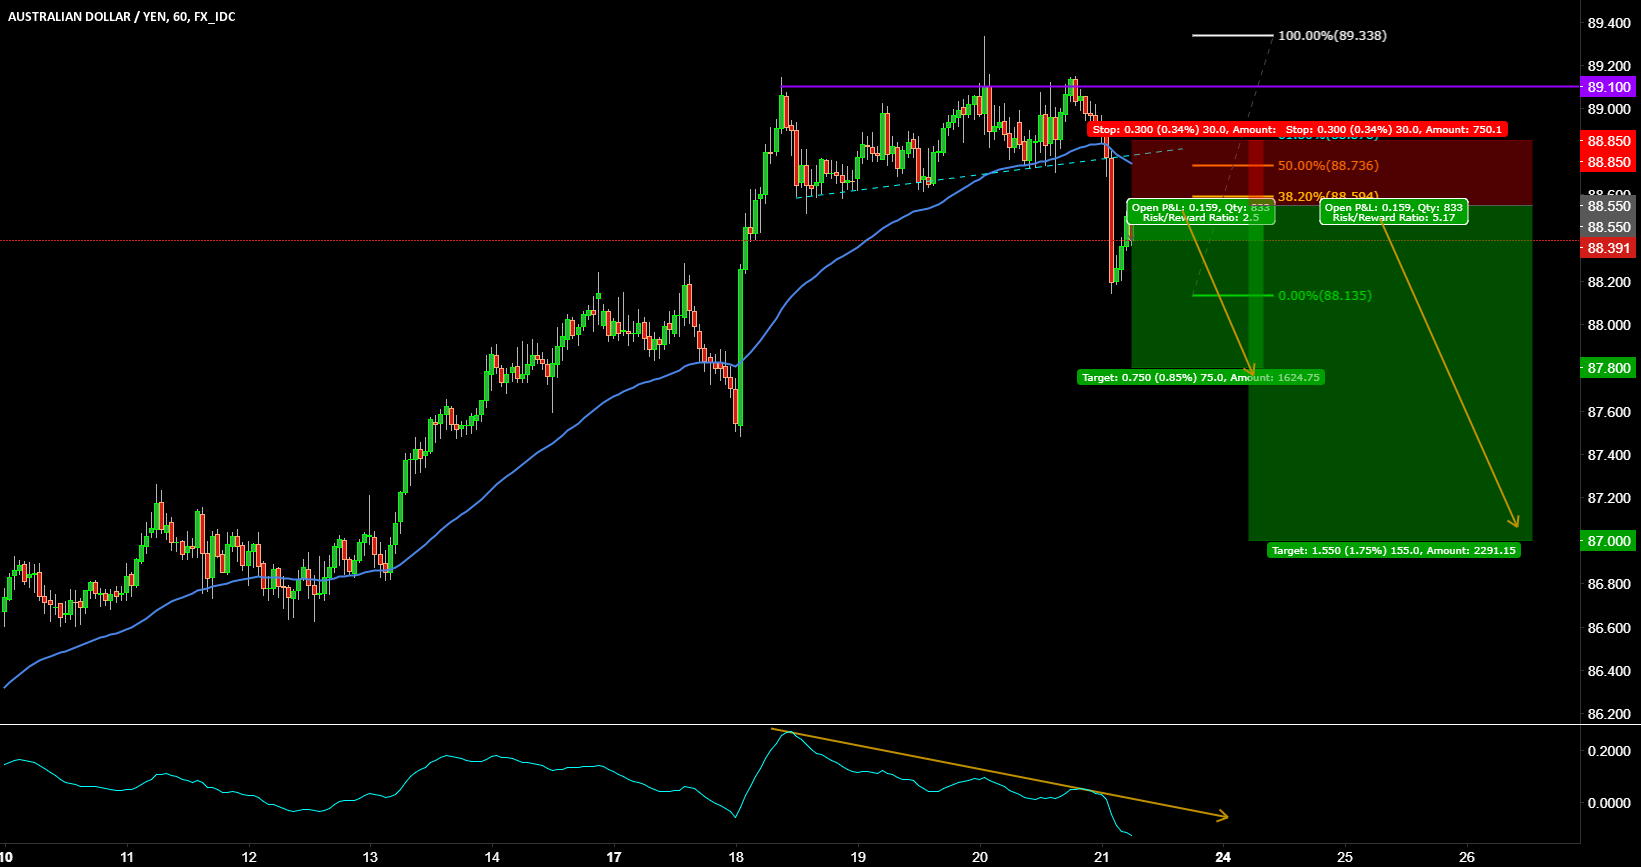 AUDJPY SELL SETUP